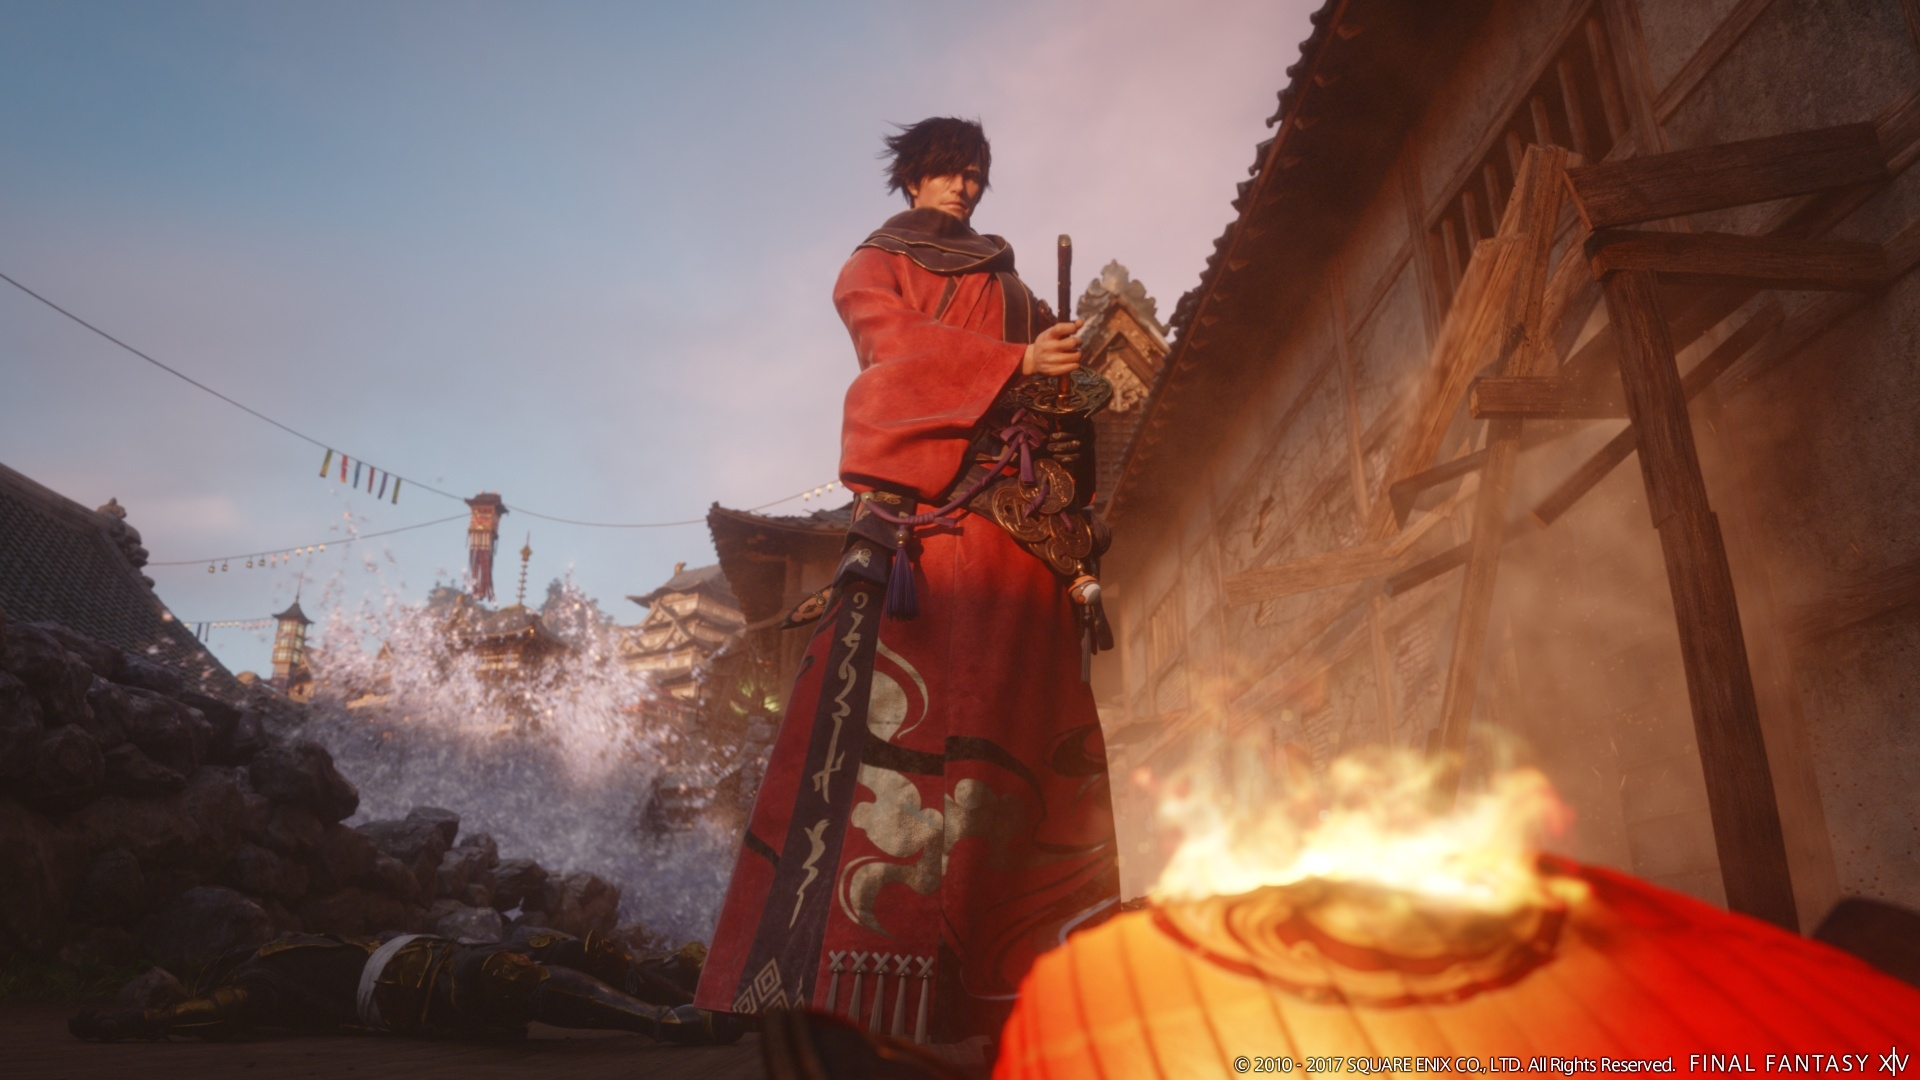 Final Fantasy XIV Stormblood Expansion Gets Even Bigger With Samurai Job And New Far Eastern